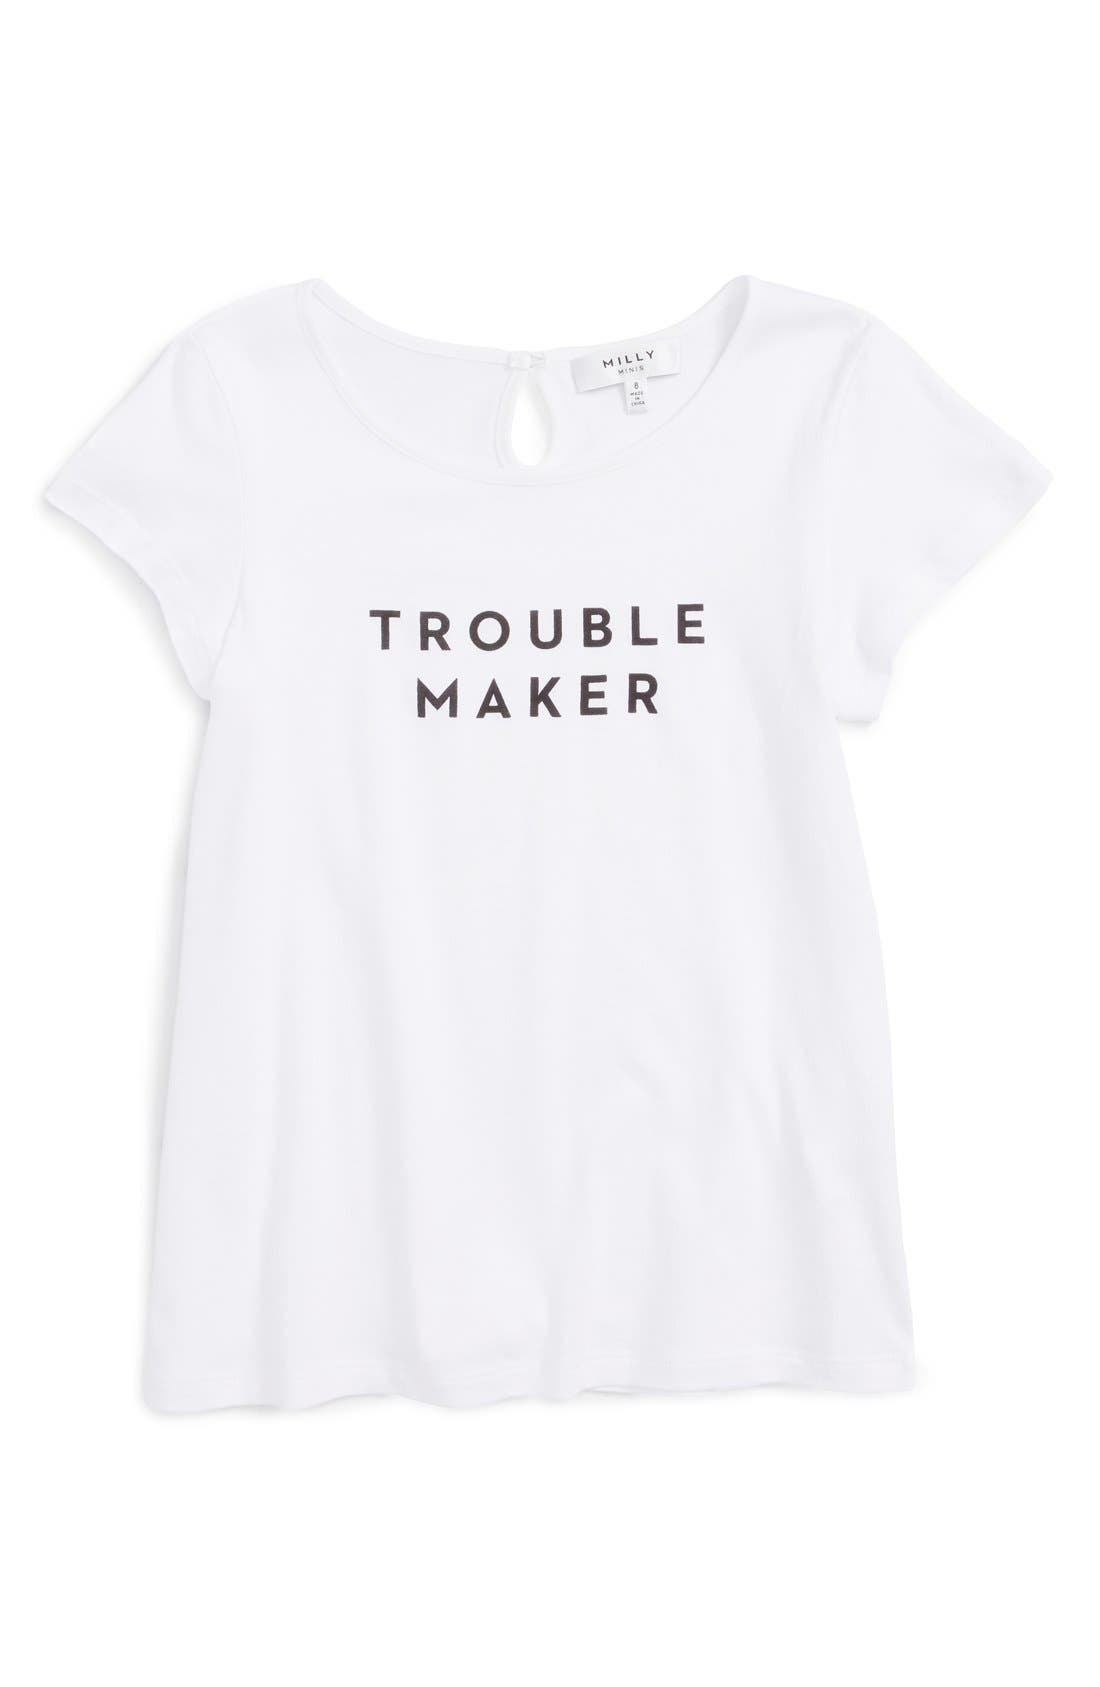 'Trouble Maker' Graphic Tee,                             Main thumbnail 1, color,                             150